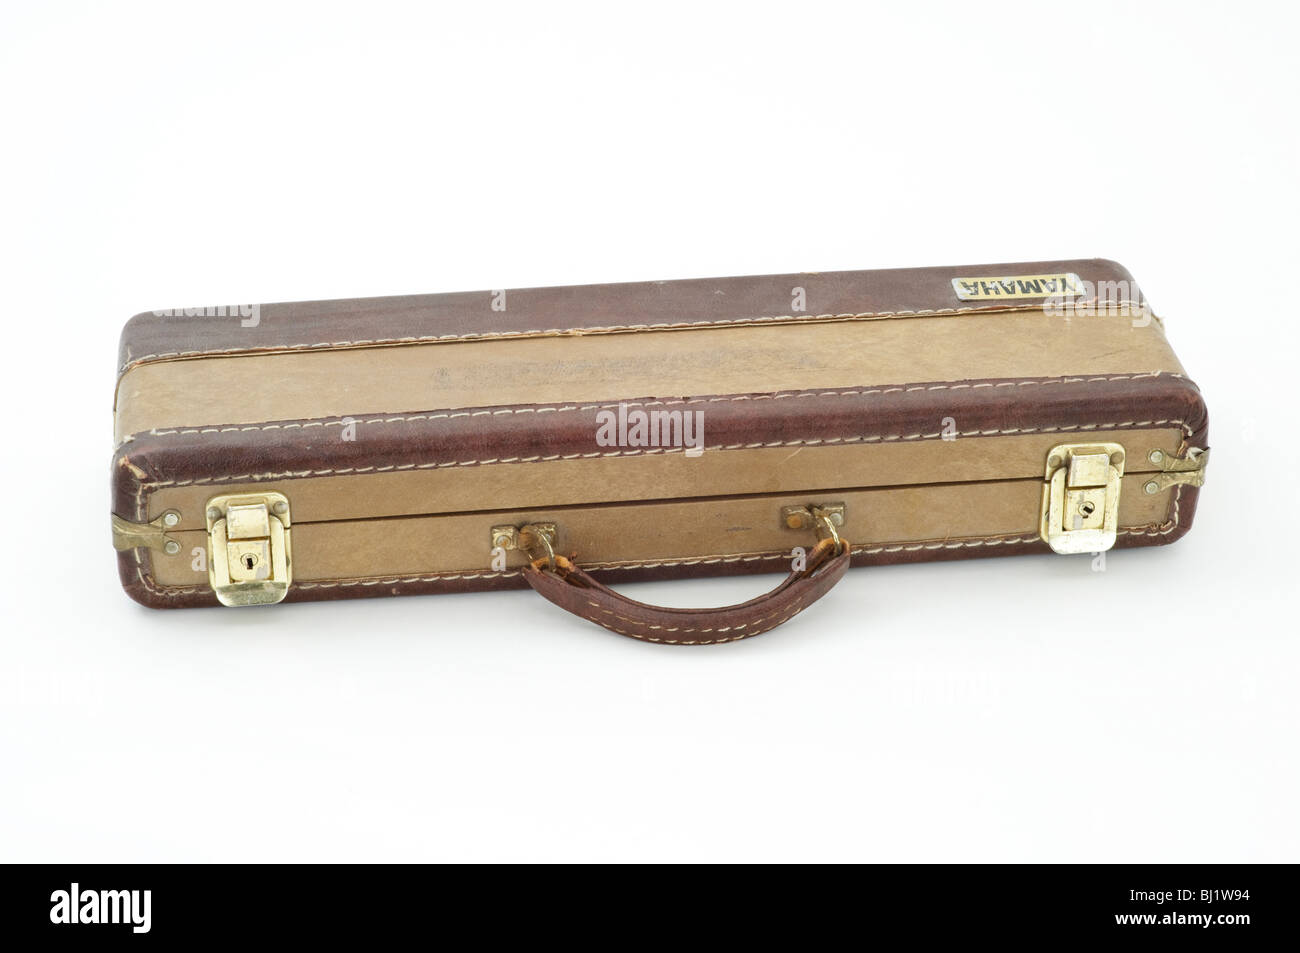 Old, beat up flute case Stock Photo: 28315984 - Alamy